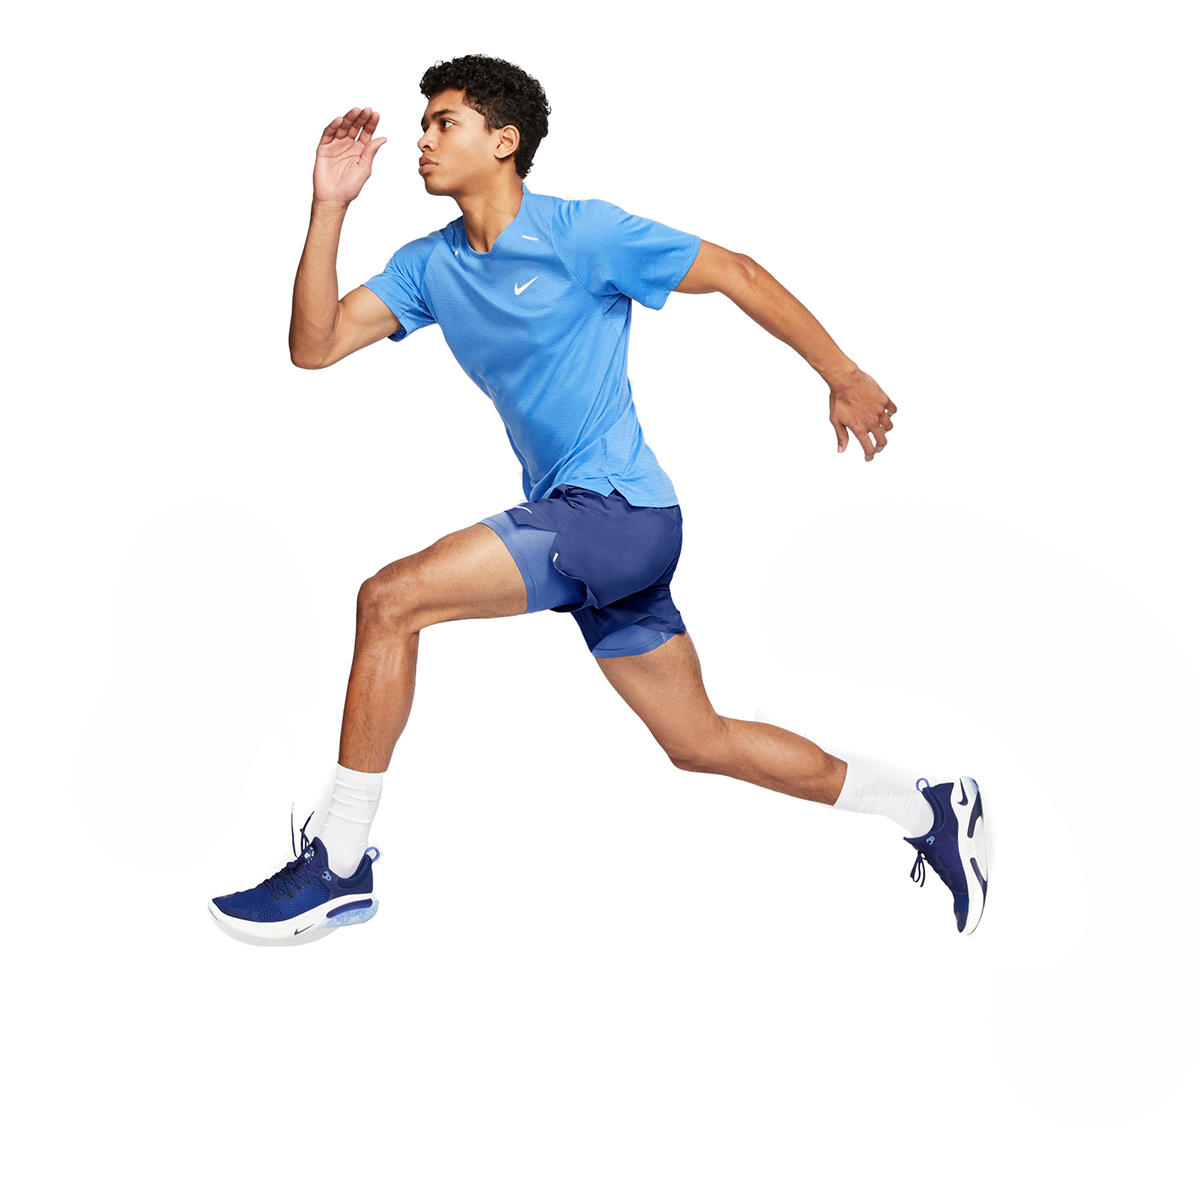 """Men's Nike Flex Stride 7"""" 2-In-1 Running Shorts - Color: Astronomy Blue/Royal Pulse - Size: M, Astronomy Blue/Royal Pulse, large, image 4"""